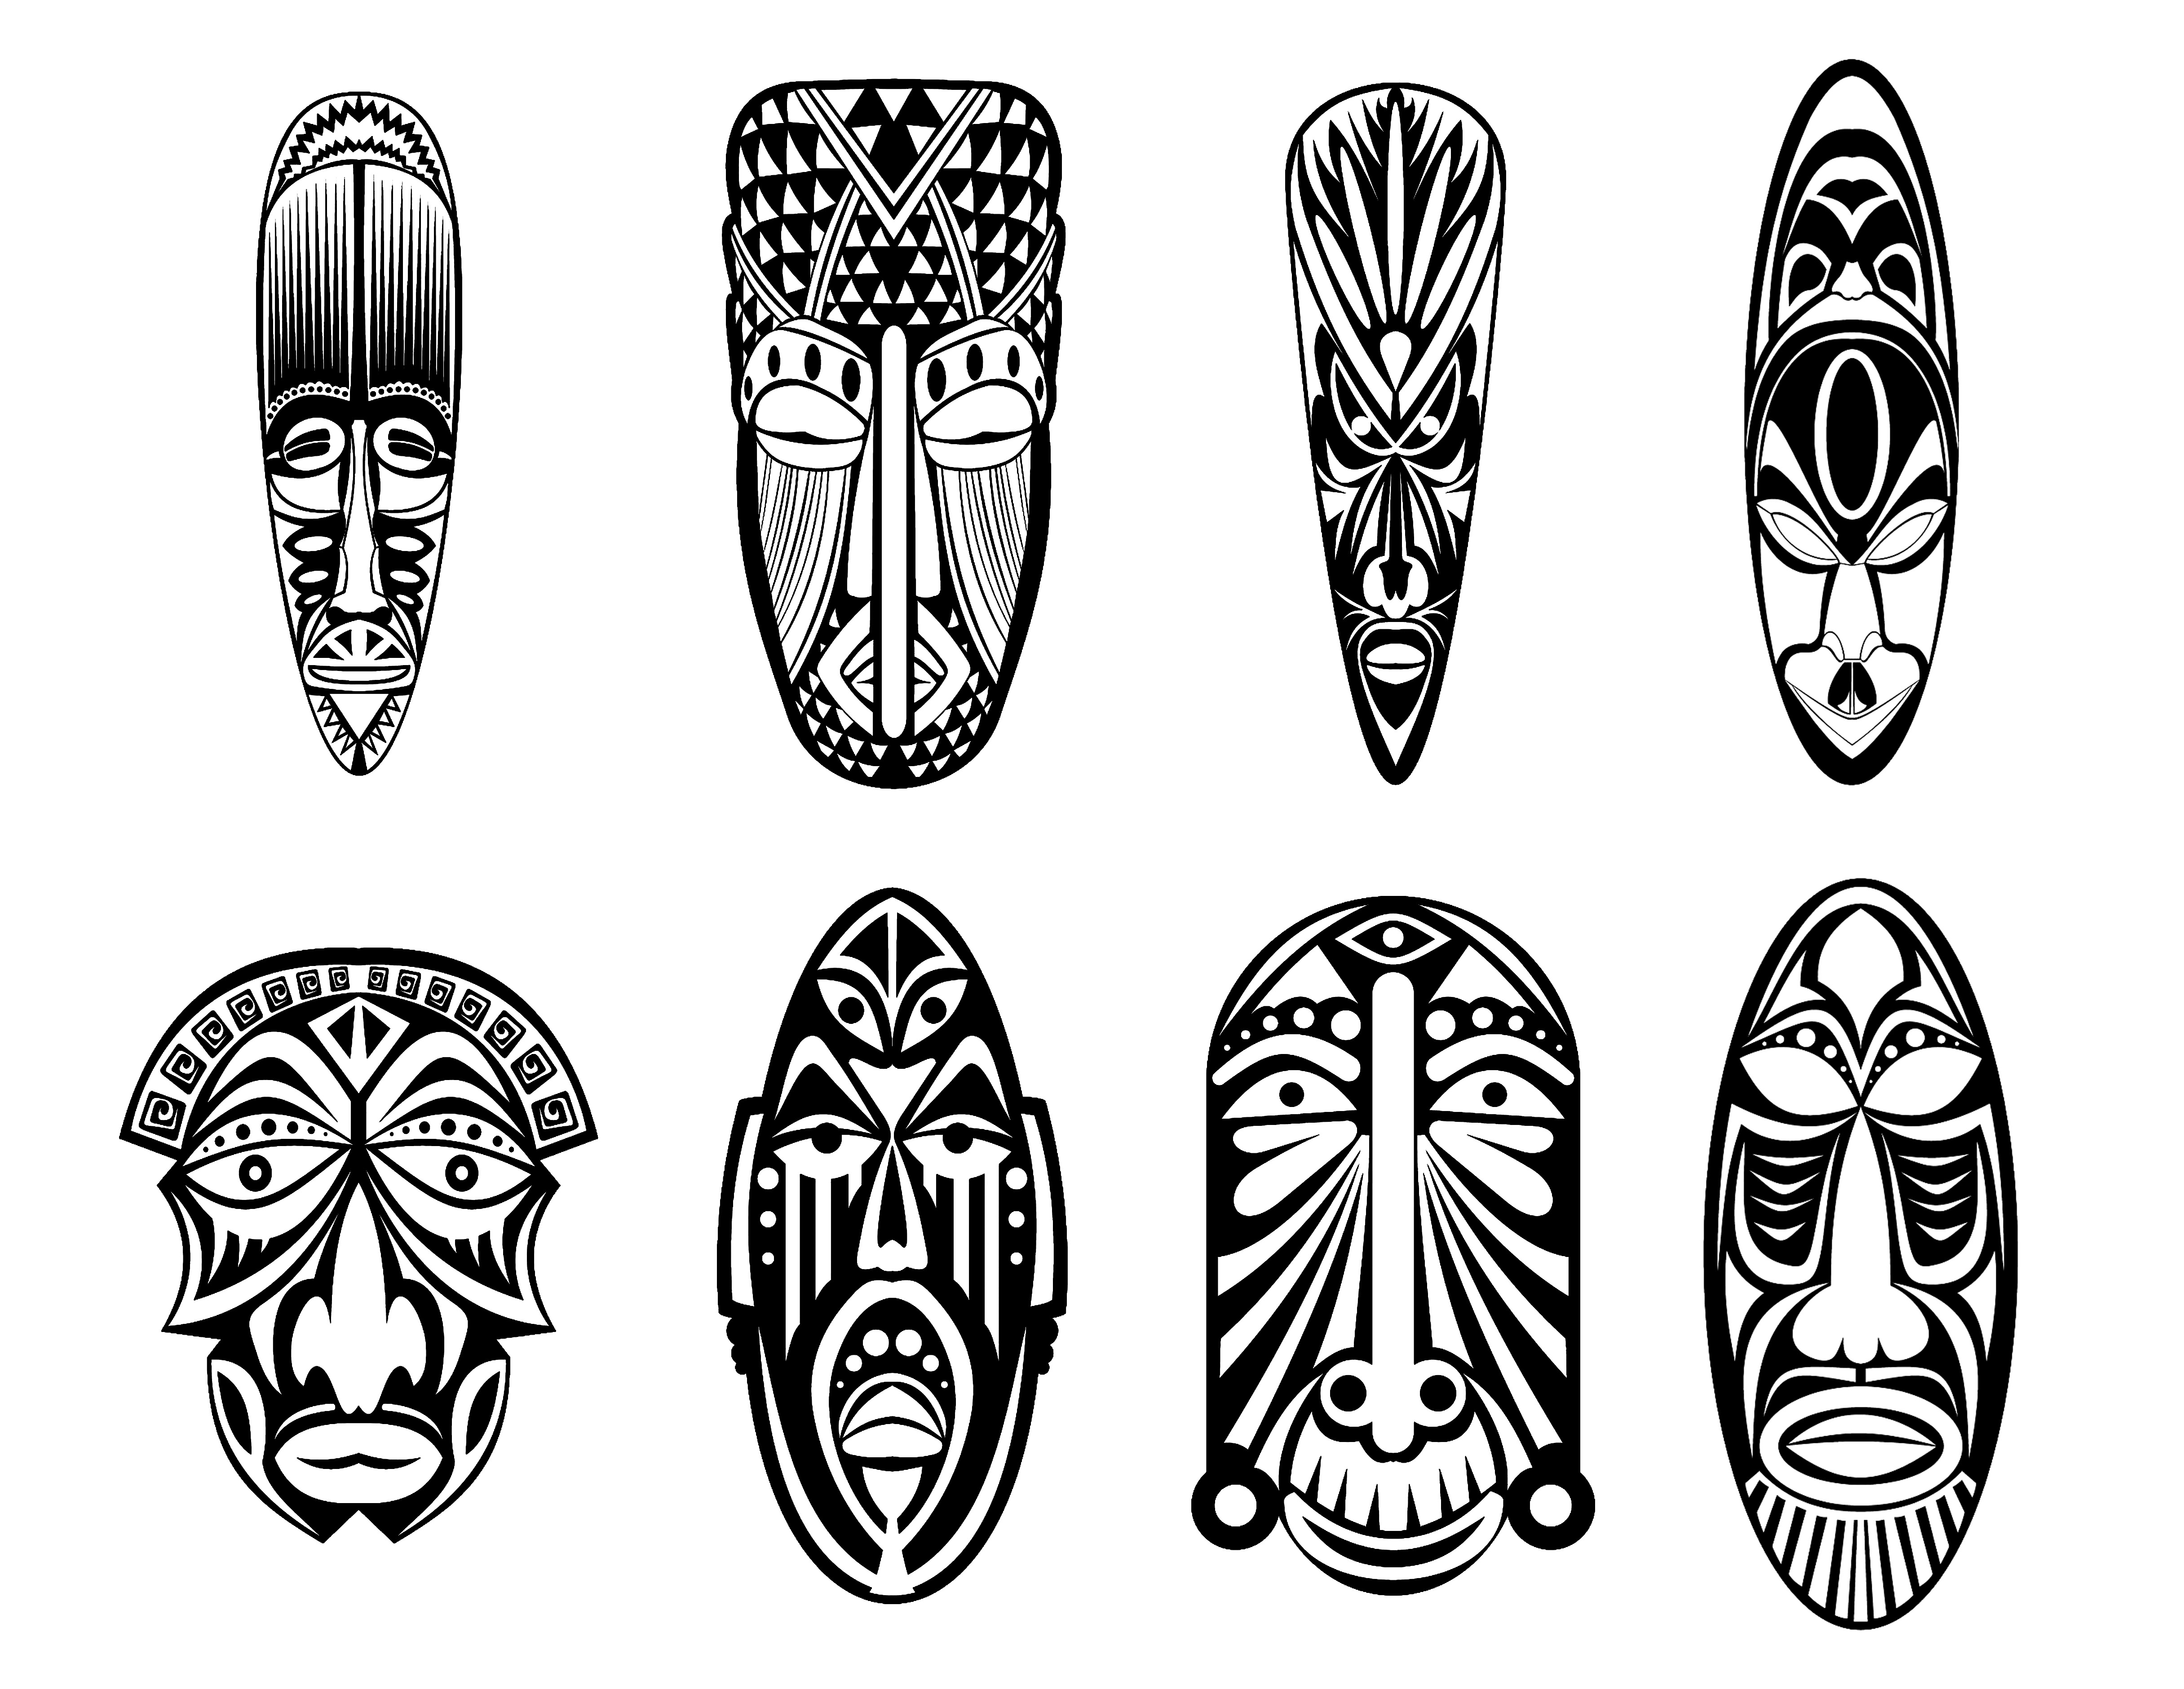 Masks coloring page to download